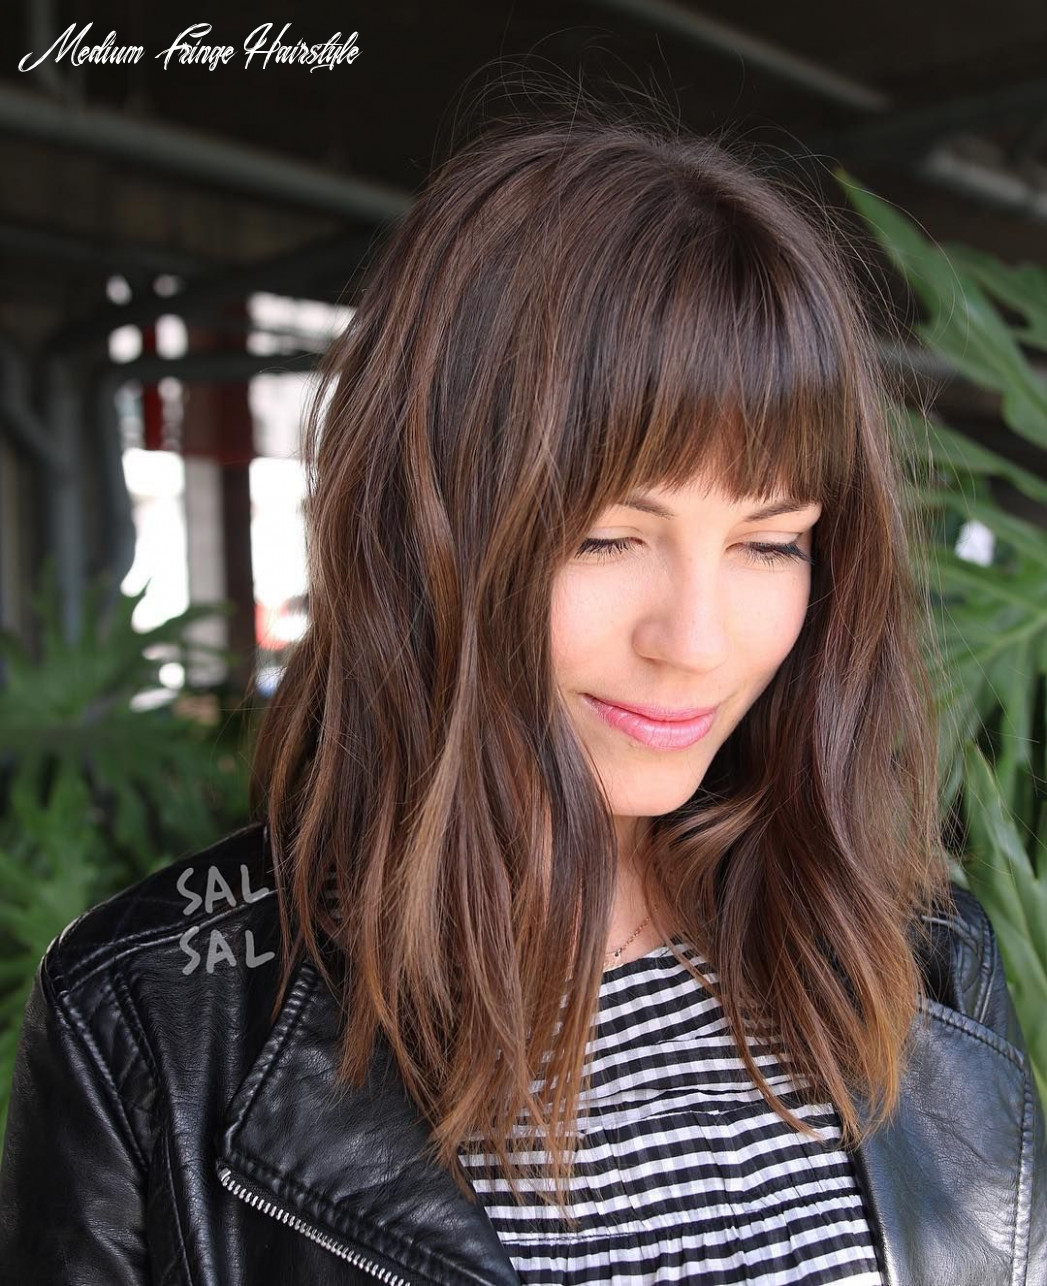 Pin on bobs & mid length cuts medium fringe hairstyle